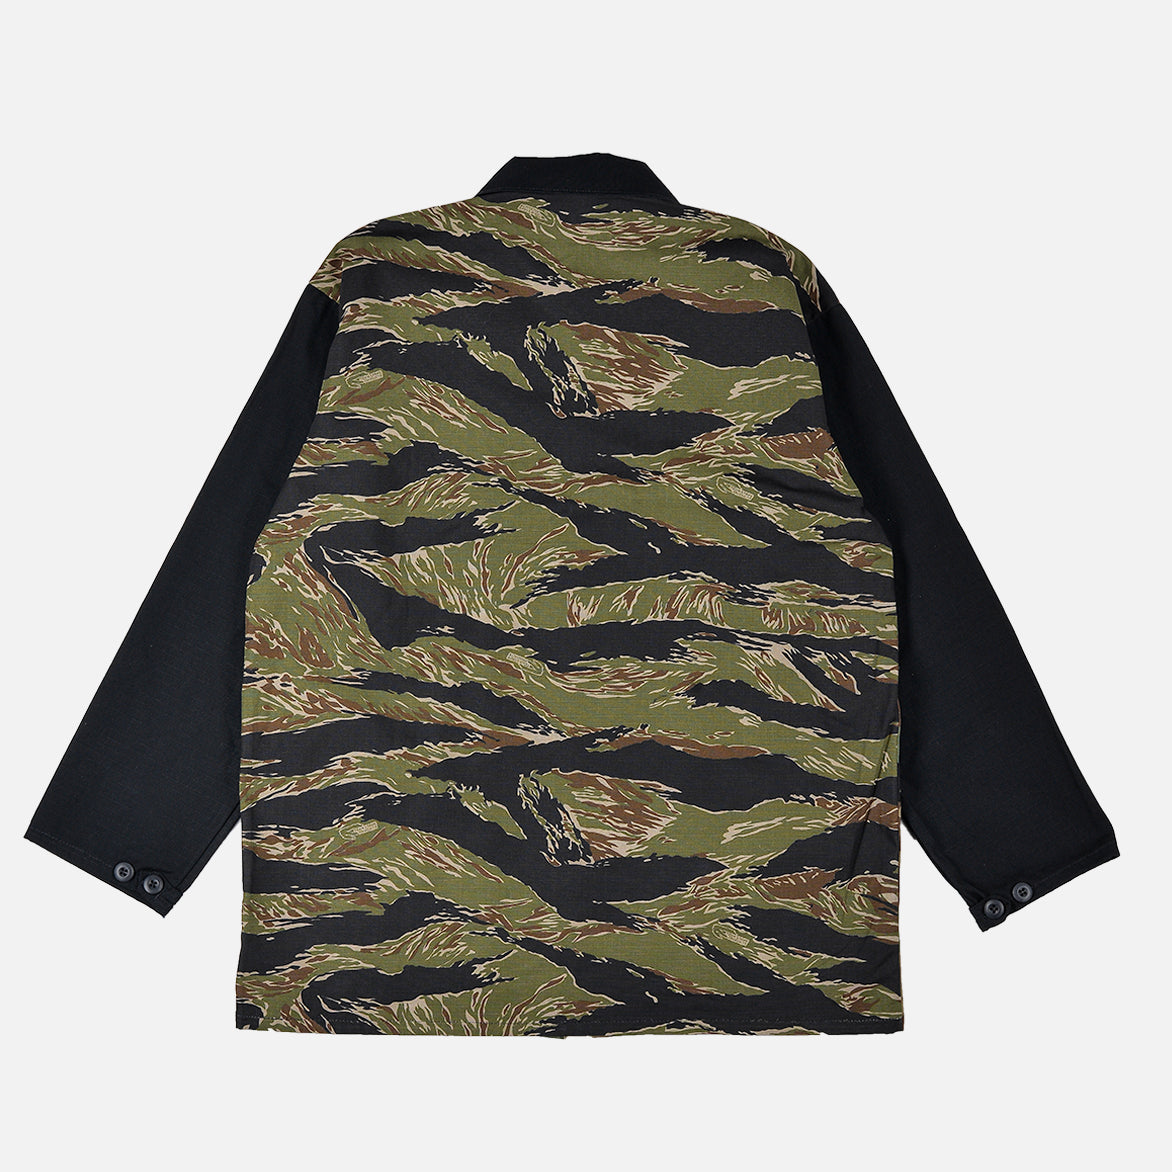 RECONSTRUCT MILITARY FATIGUE JACKET - WOODLAND CAMO